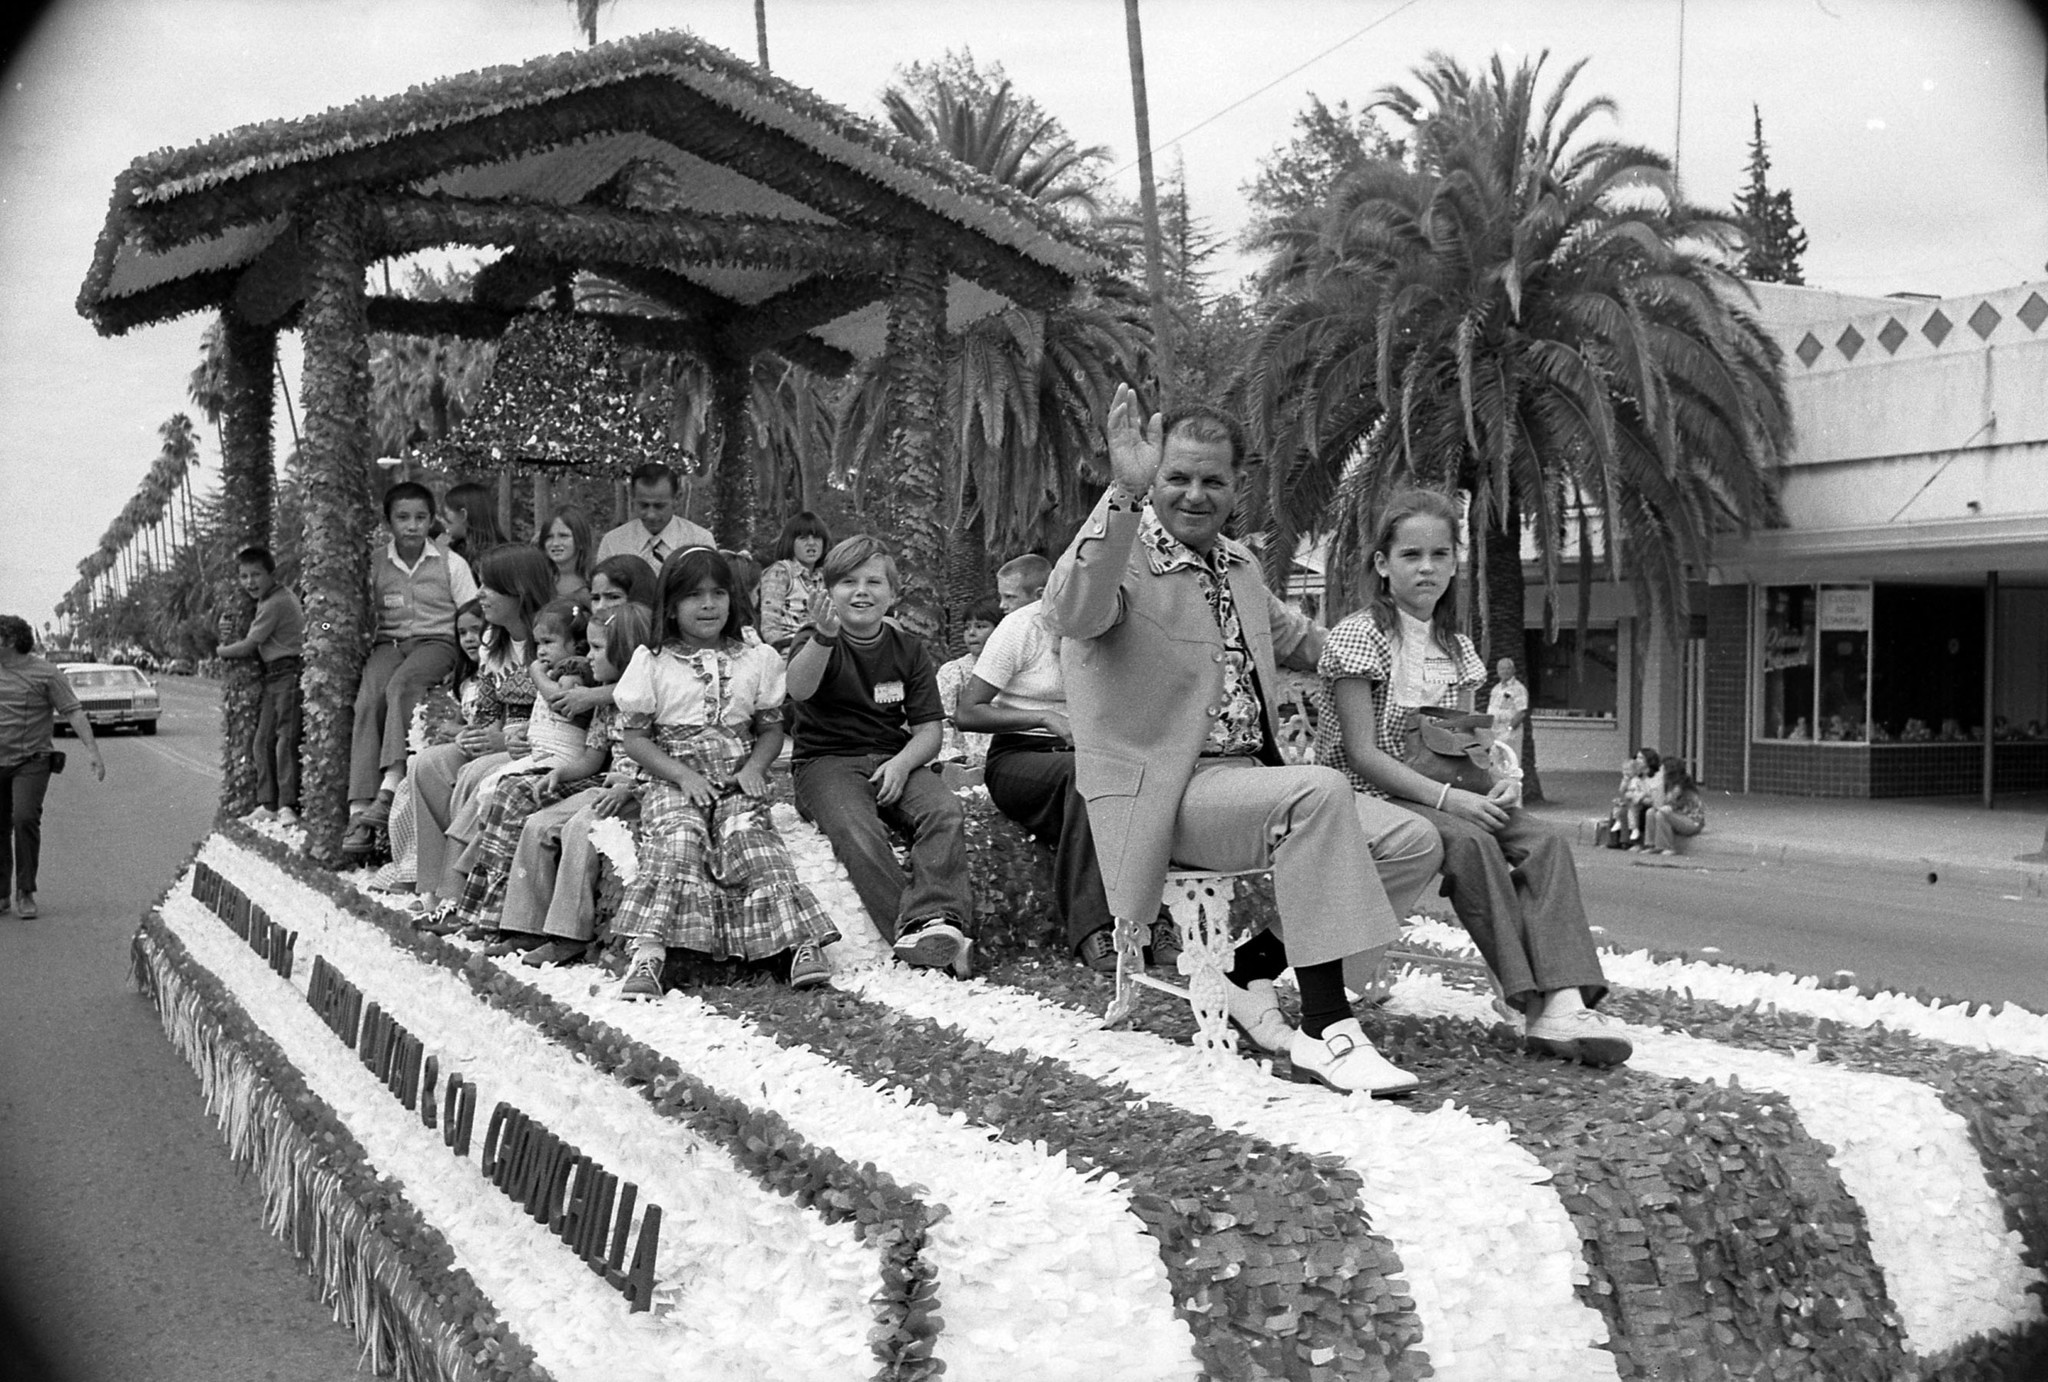 Aug. 22, 1976: Chowchilla kidnapping bus driver Ed Ray and children ride on float in parade held in